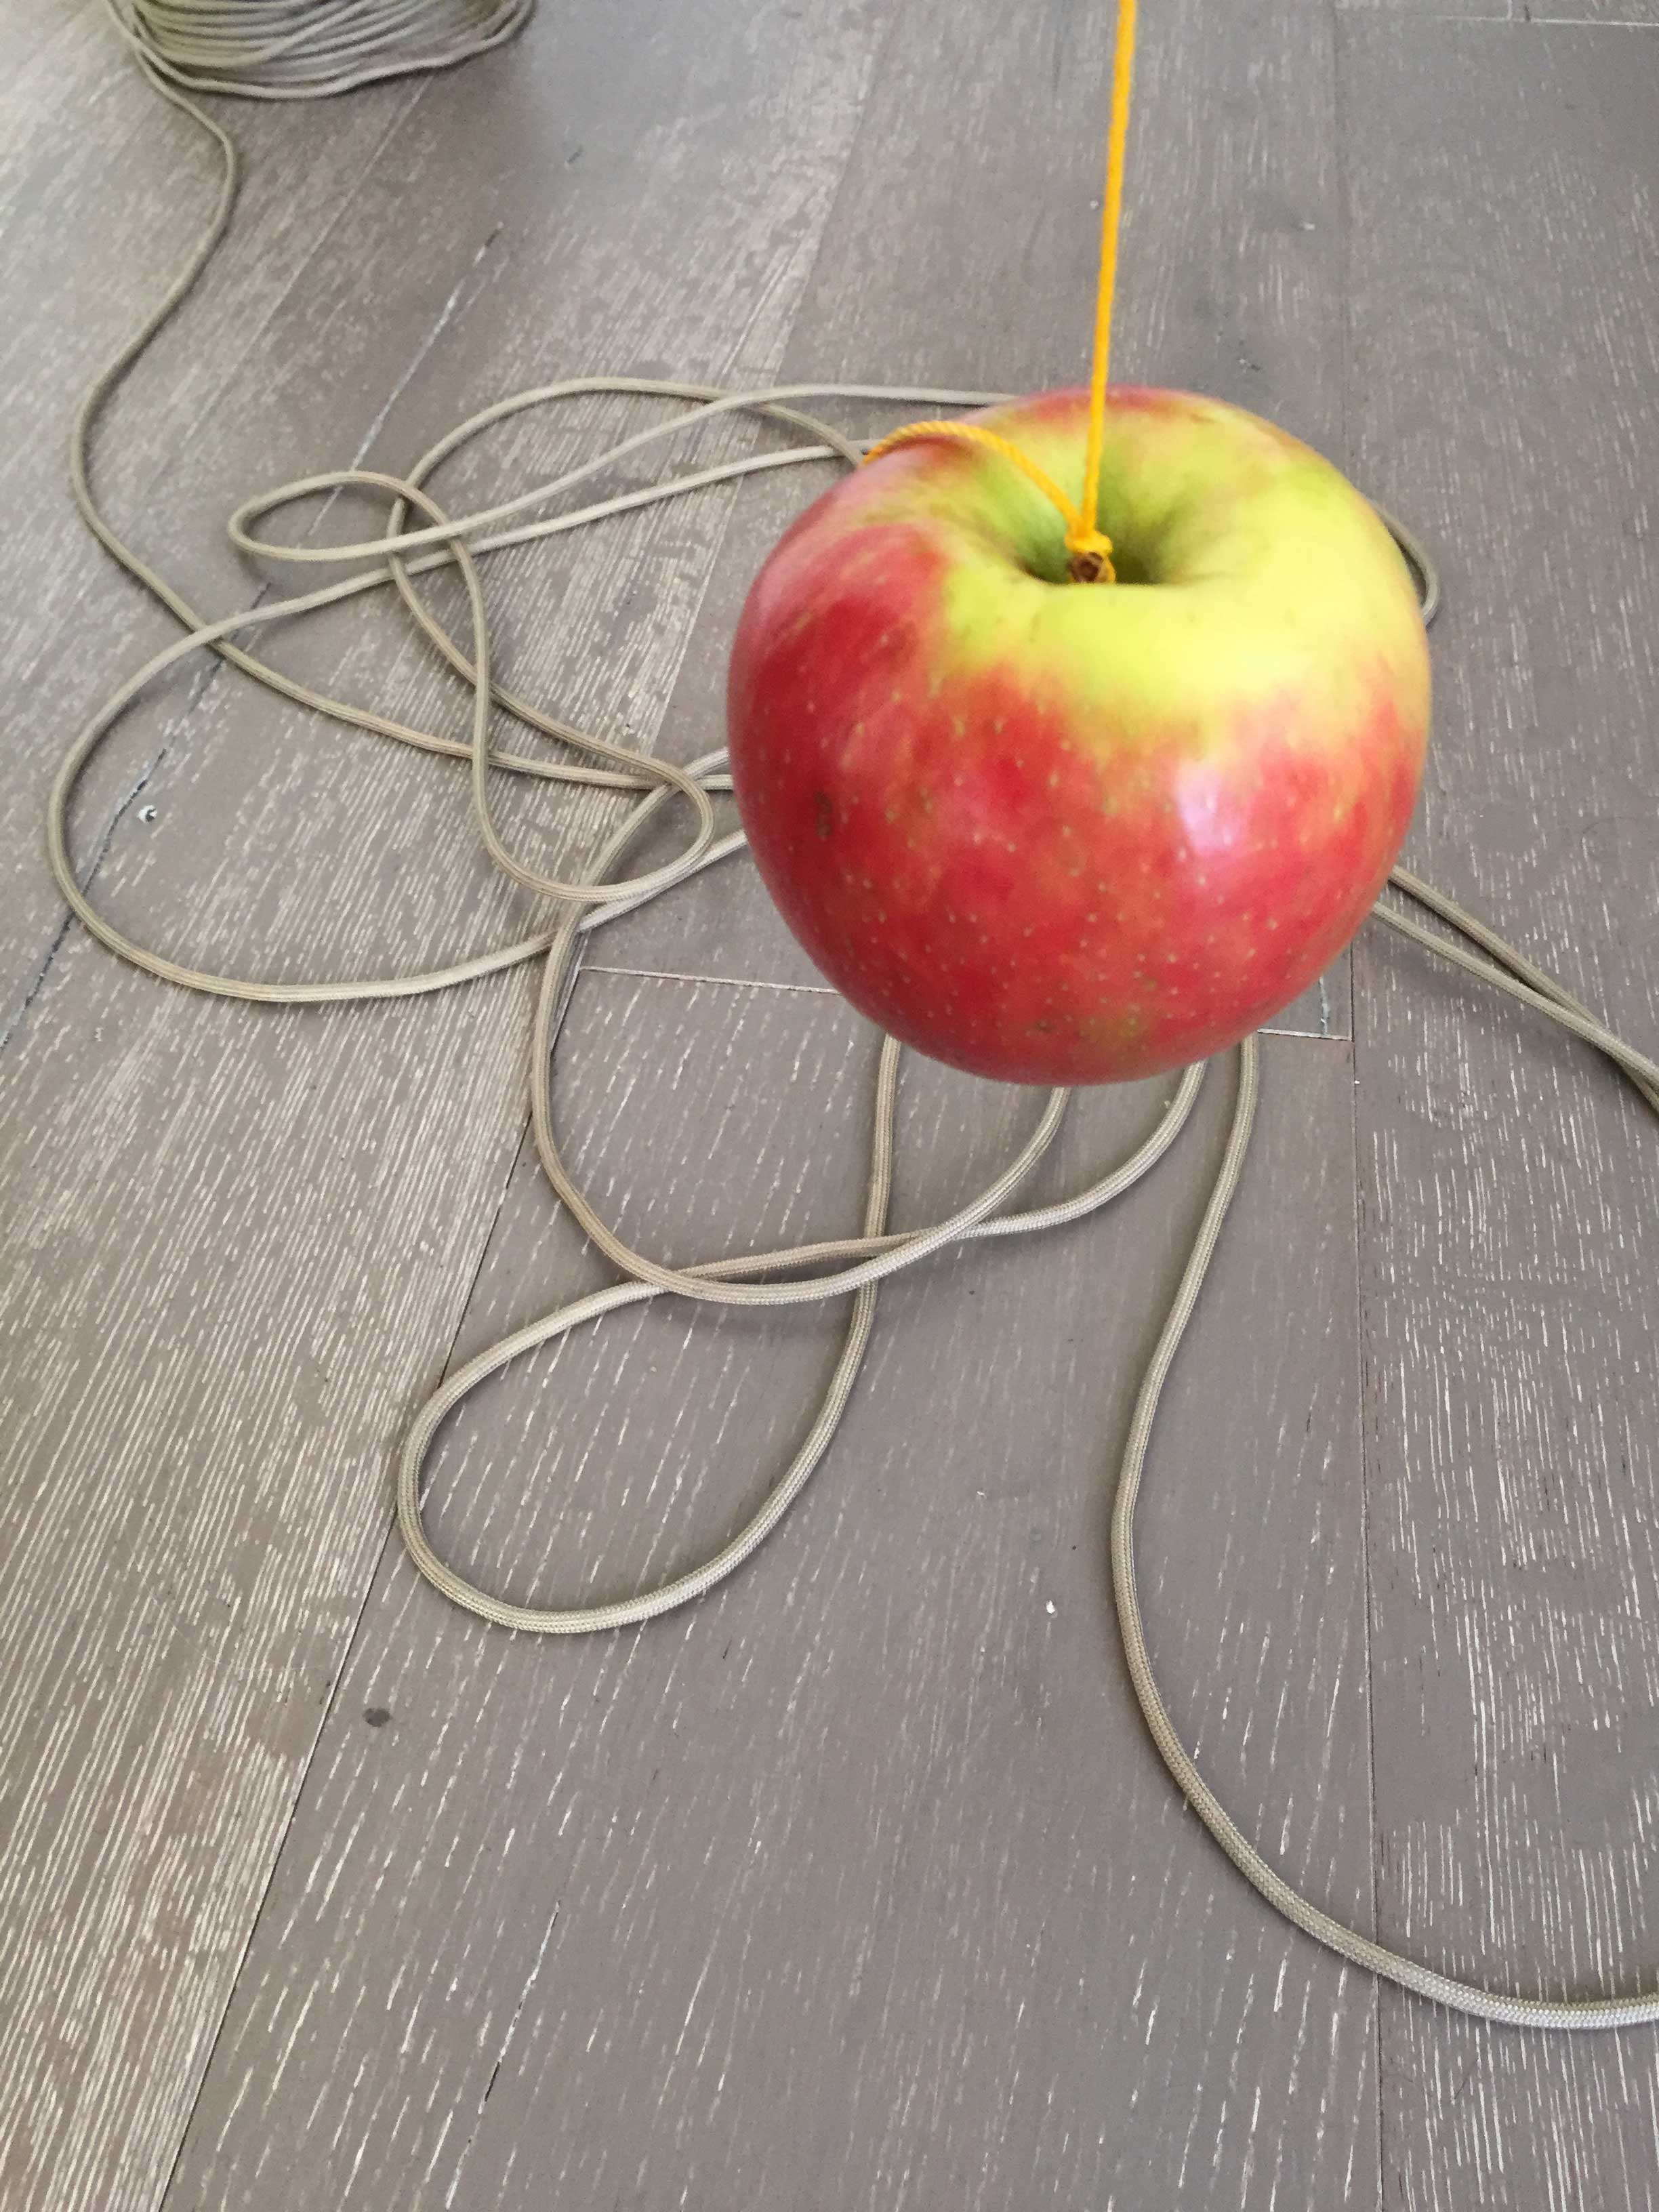 Photograph of an apple tied to a piece of string sitting on a wooden background